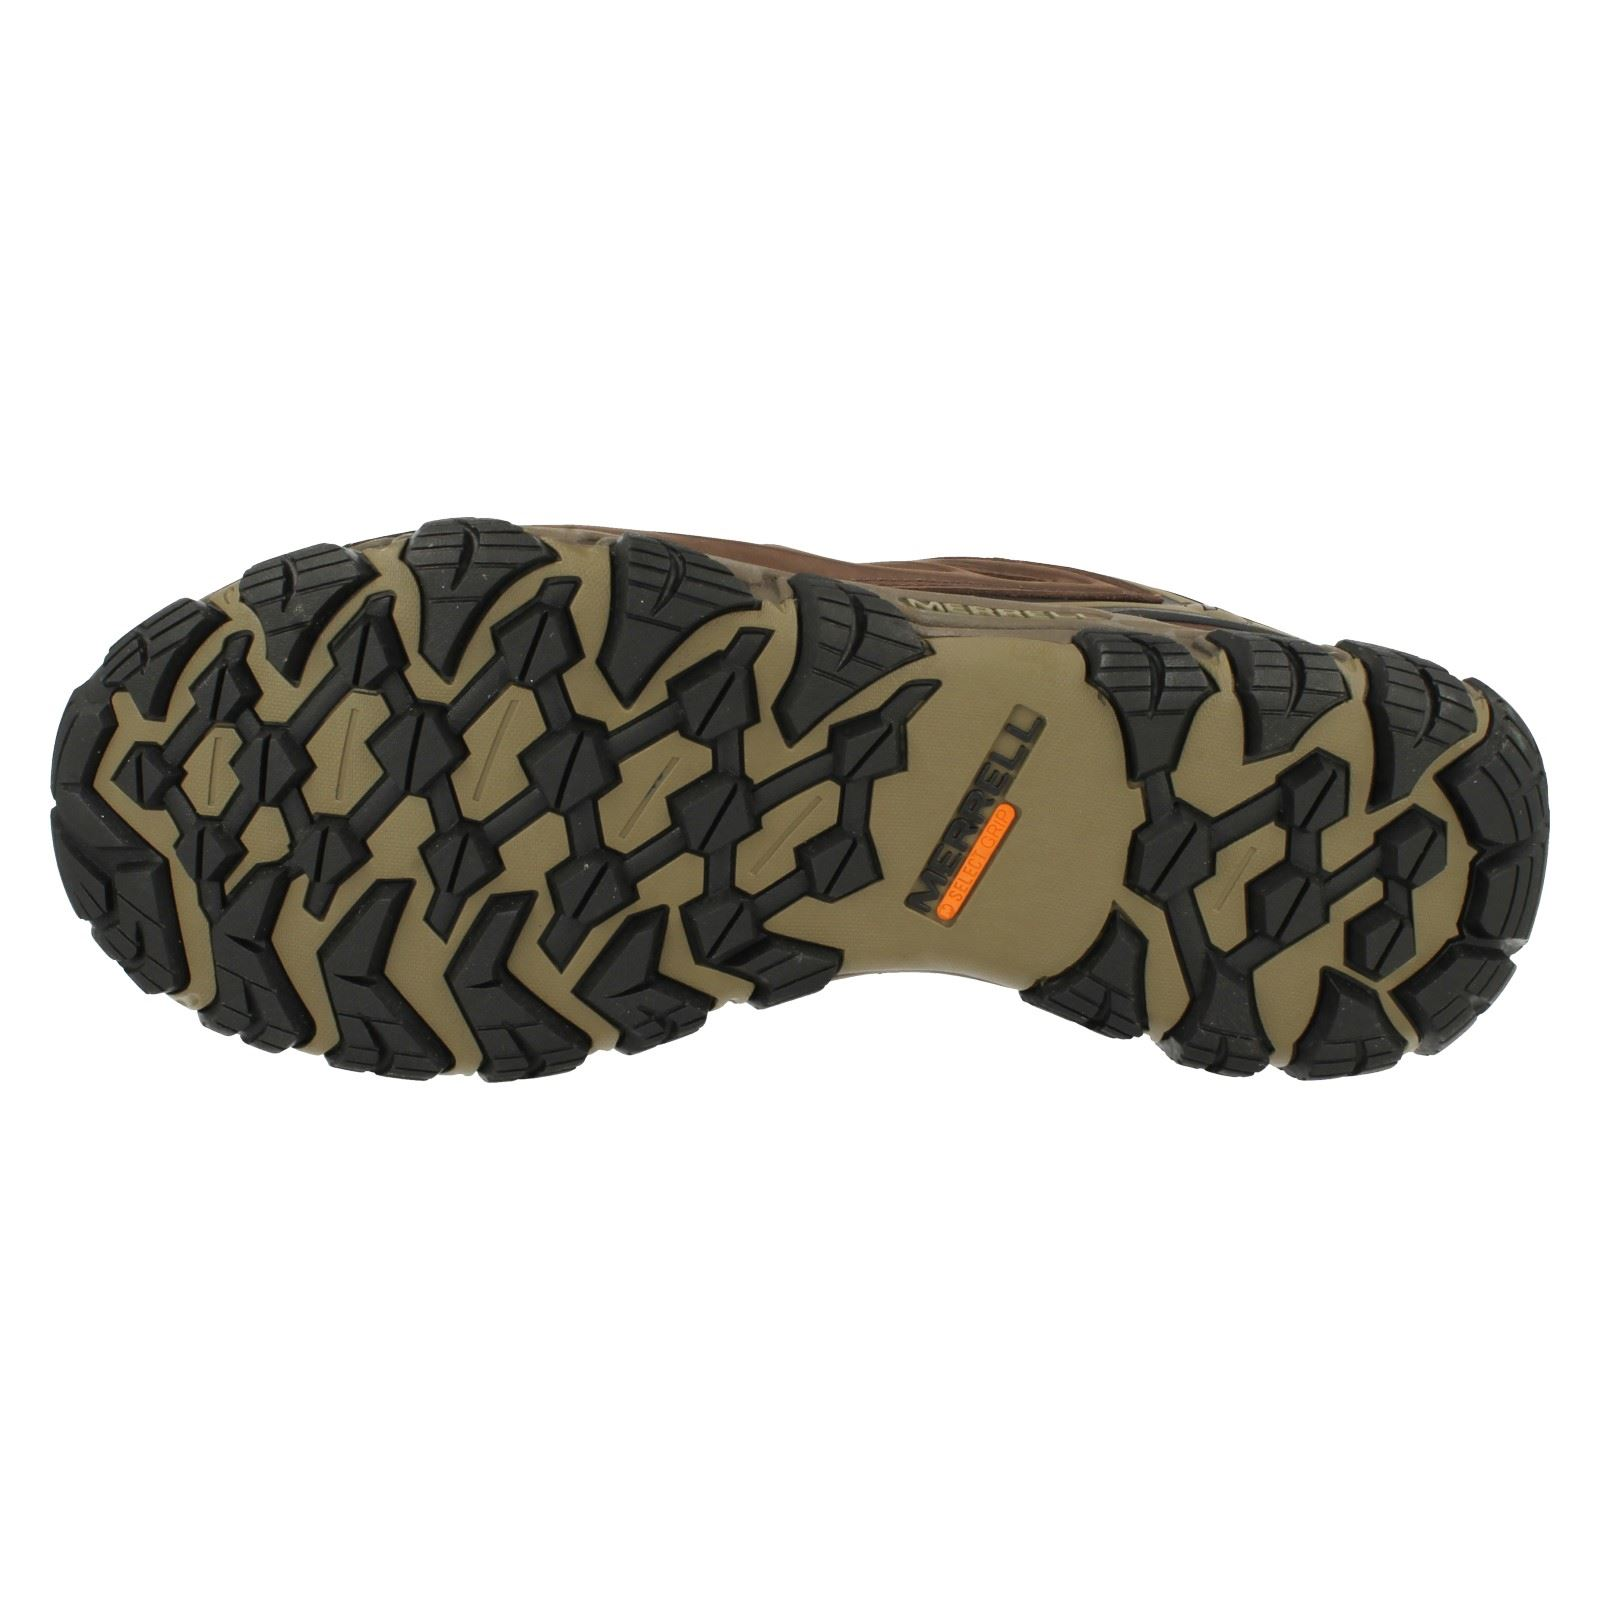 Herren Merrell Lace Up Walking Waterproof Schuhes Pulsate Waterproof Walking 5011d2